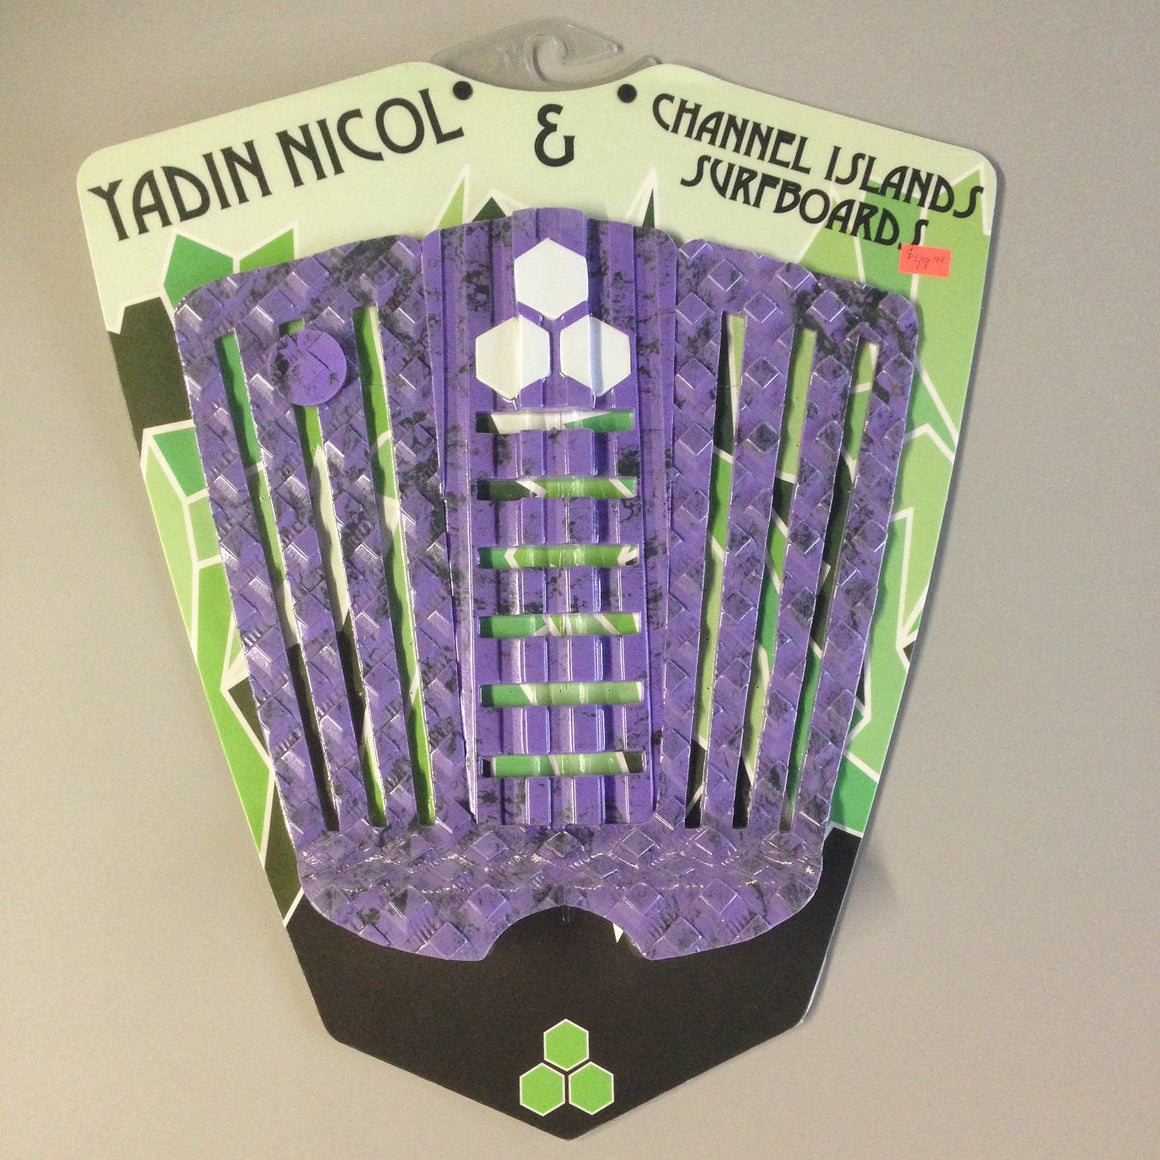 Deck pads - Channel Islands - Yadin Nicol - Purple